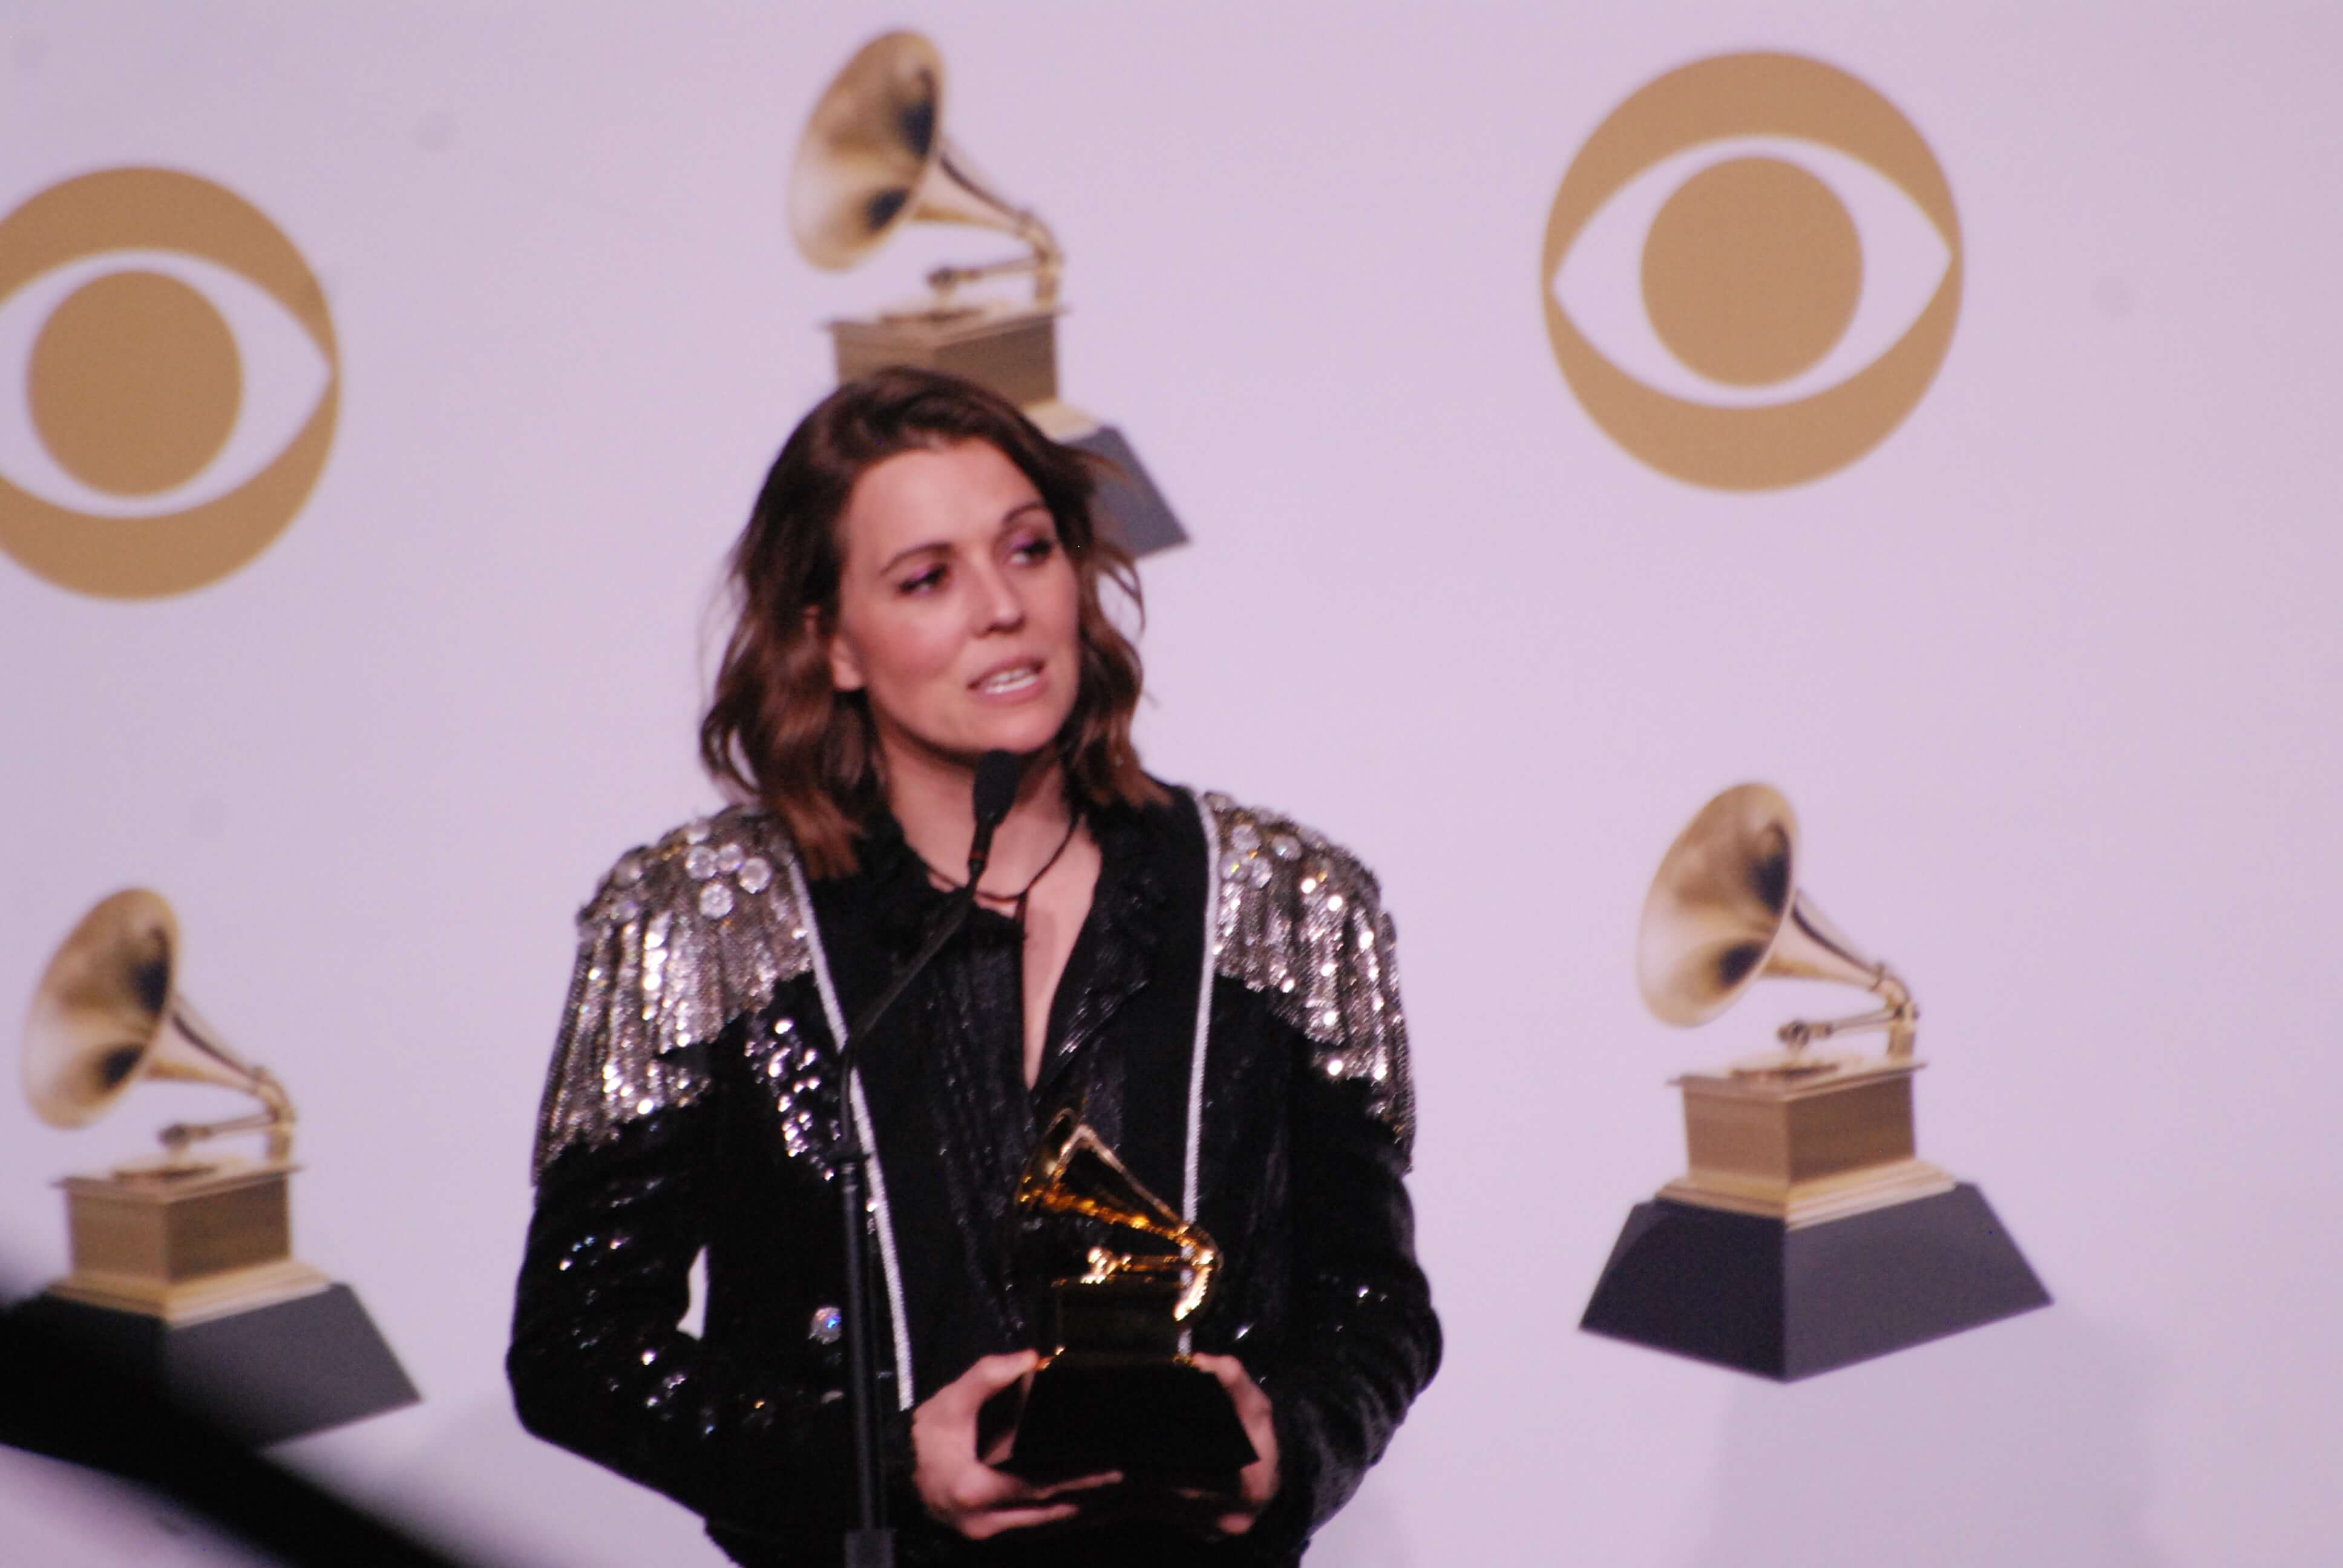 The 2019 Grammy Show Coverage